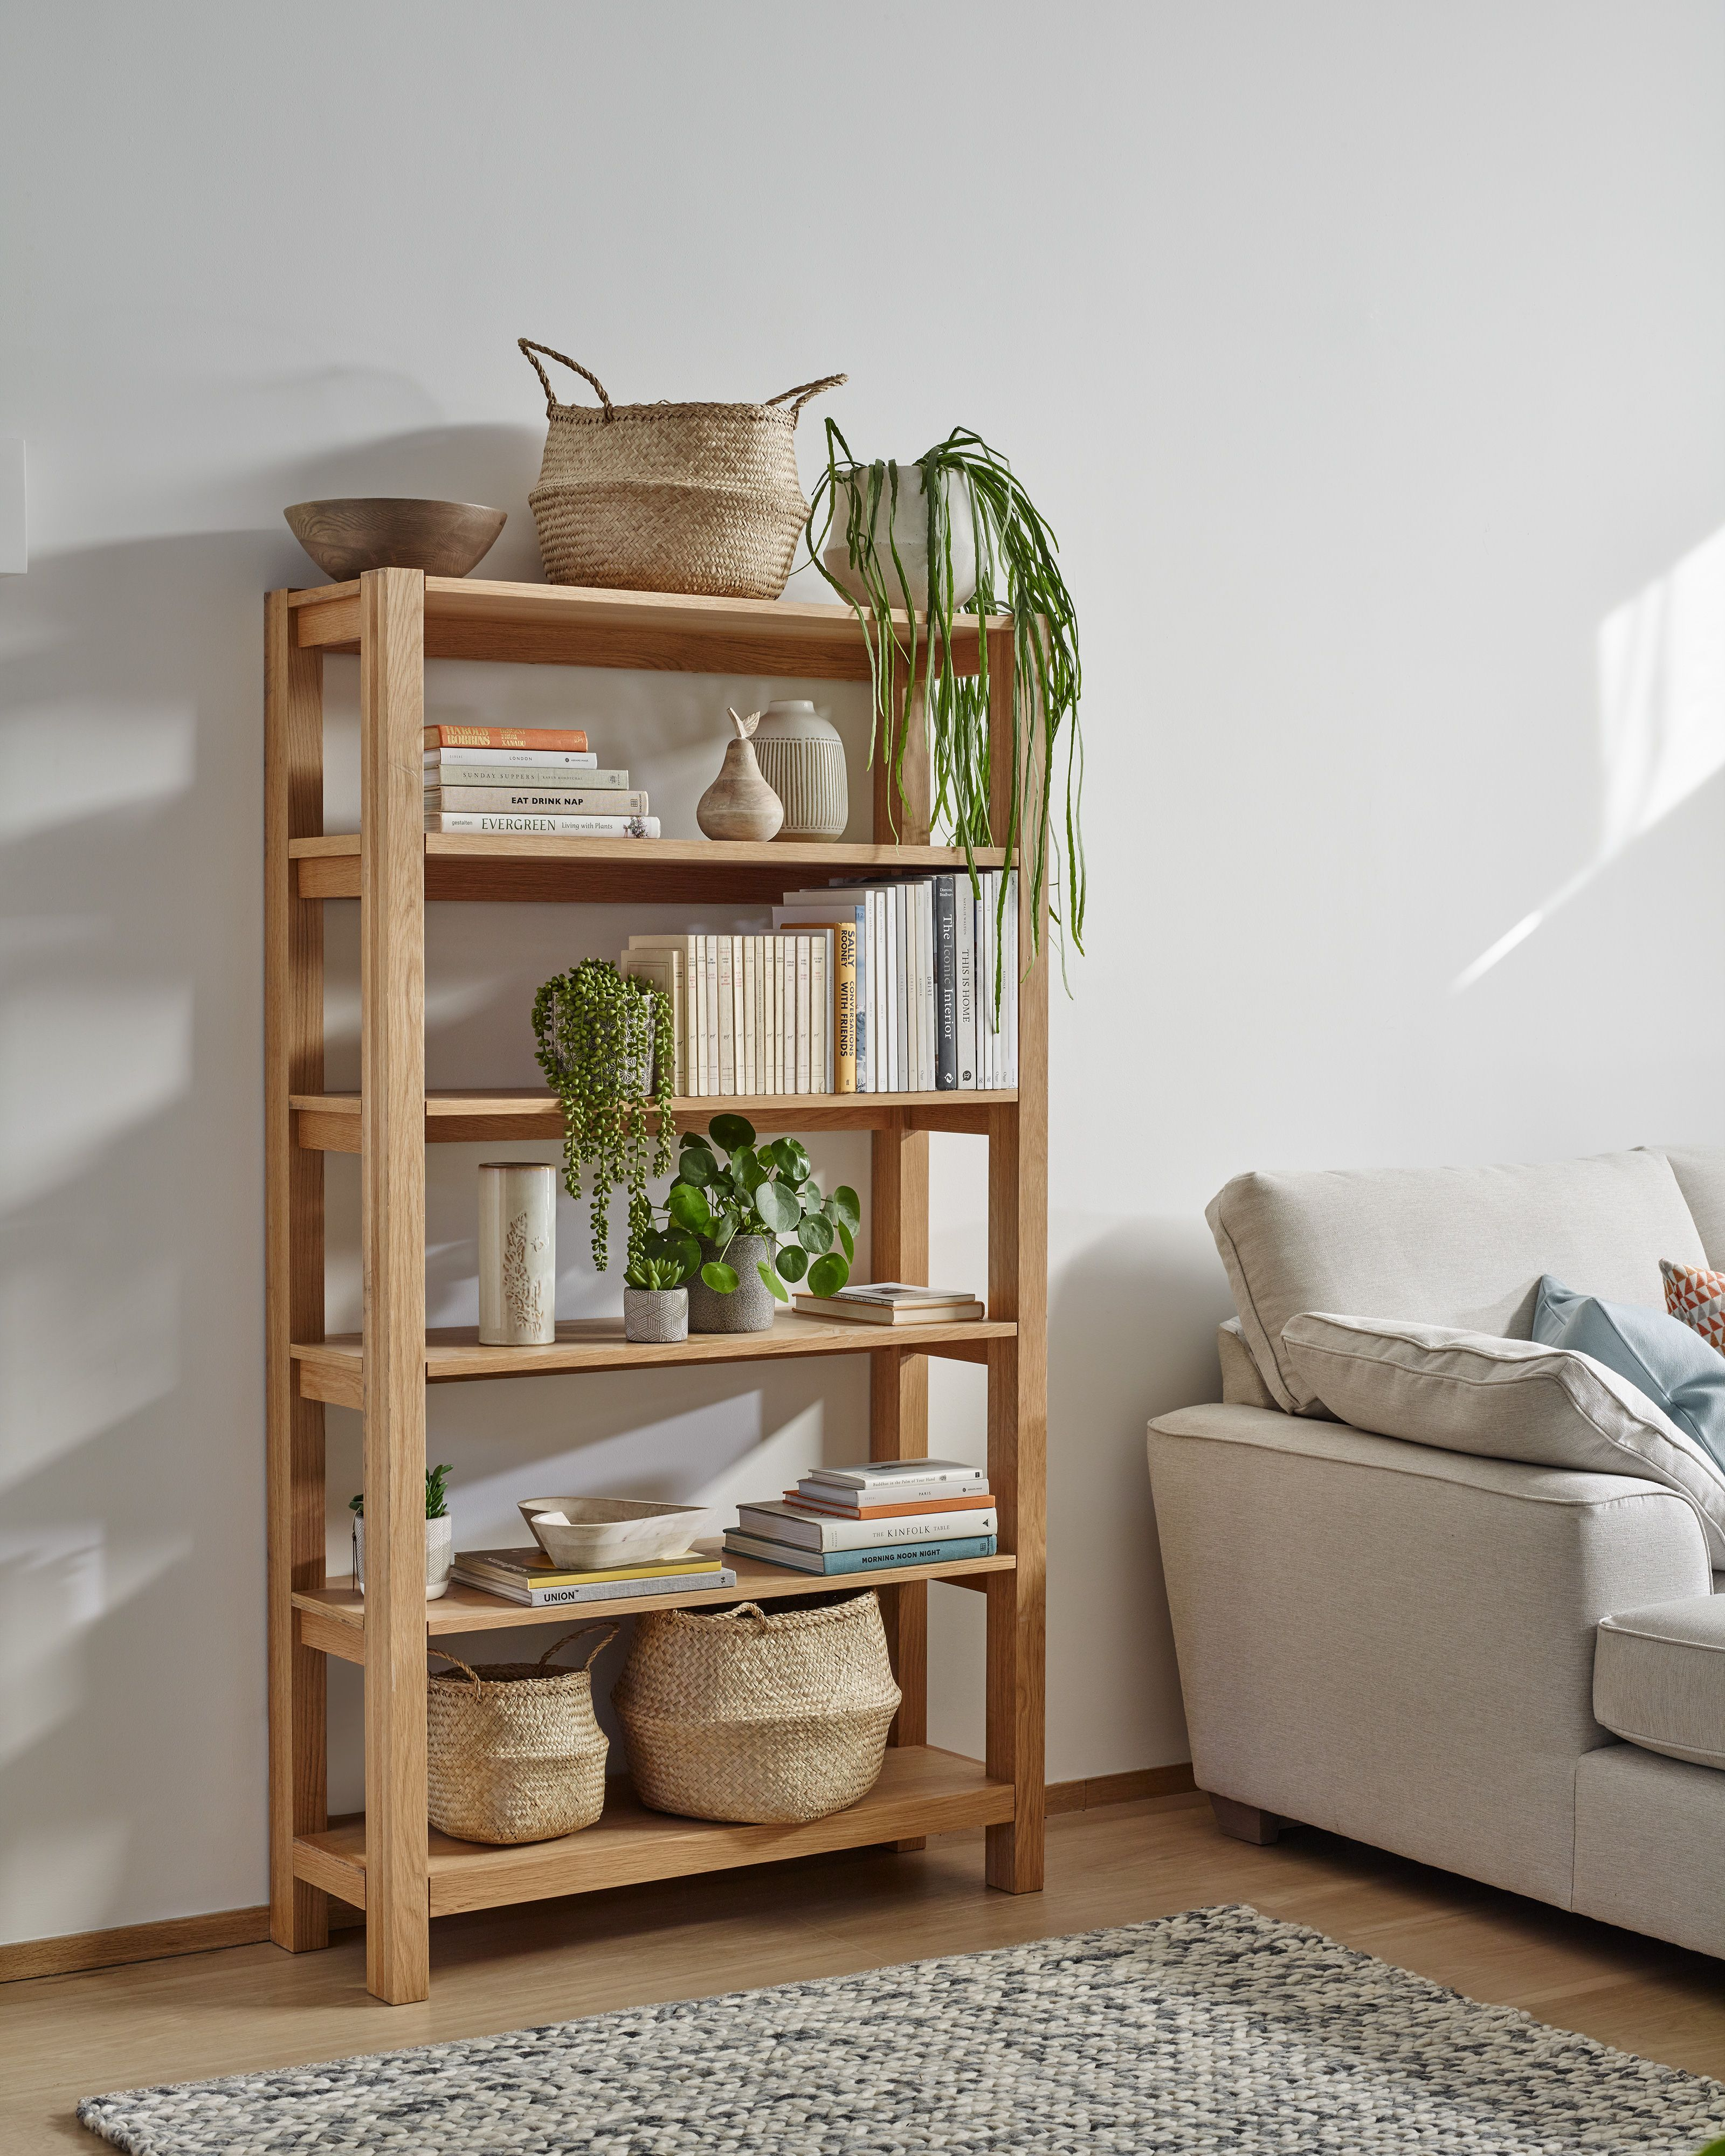 Sonoma™ Open Shelving Unit in 2020 (With images) Open